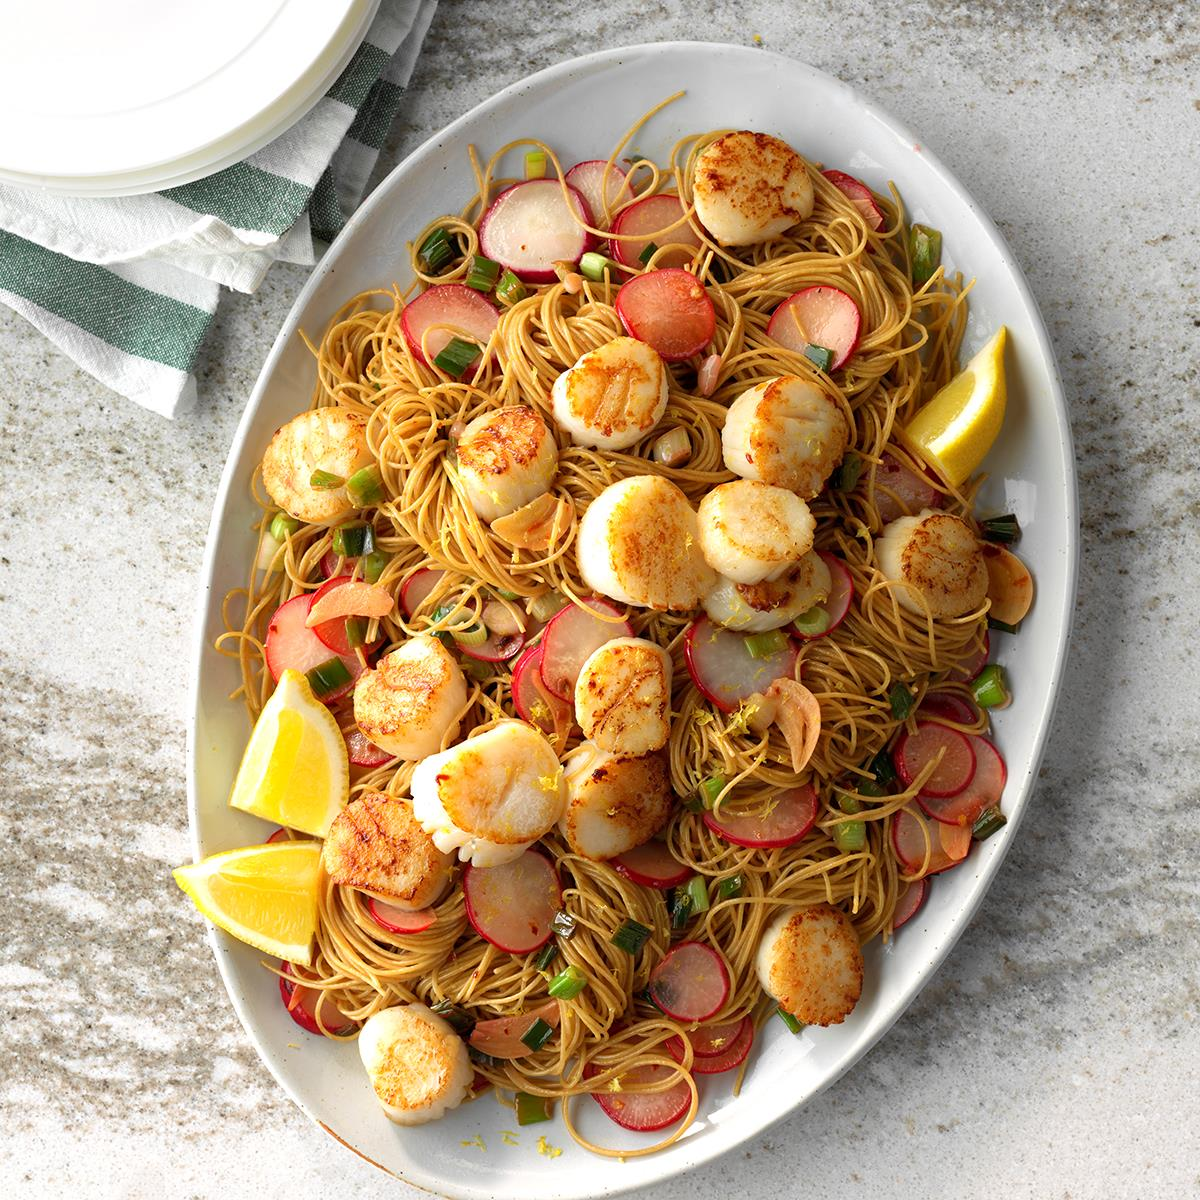 Lemony scallops with angel hair pasta exps sdas18 200385 c03 29  12b